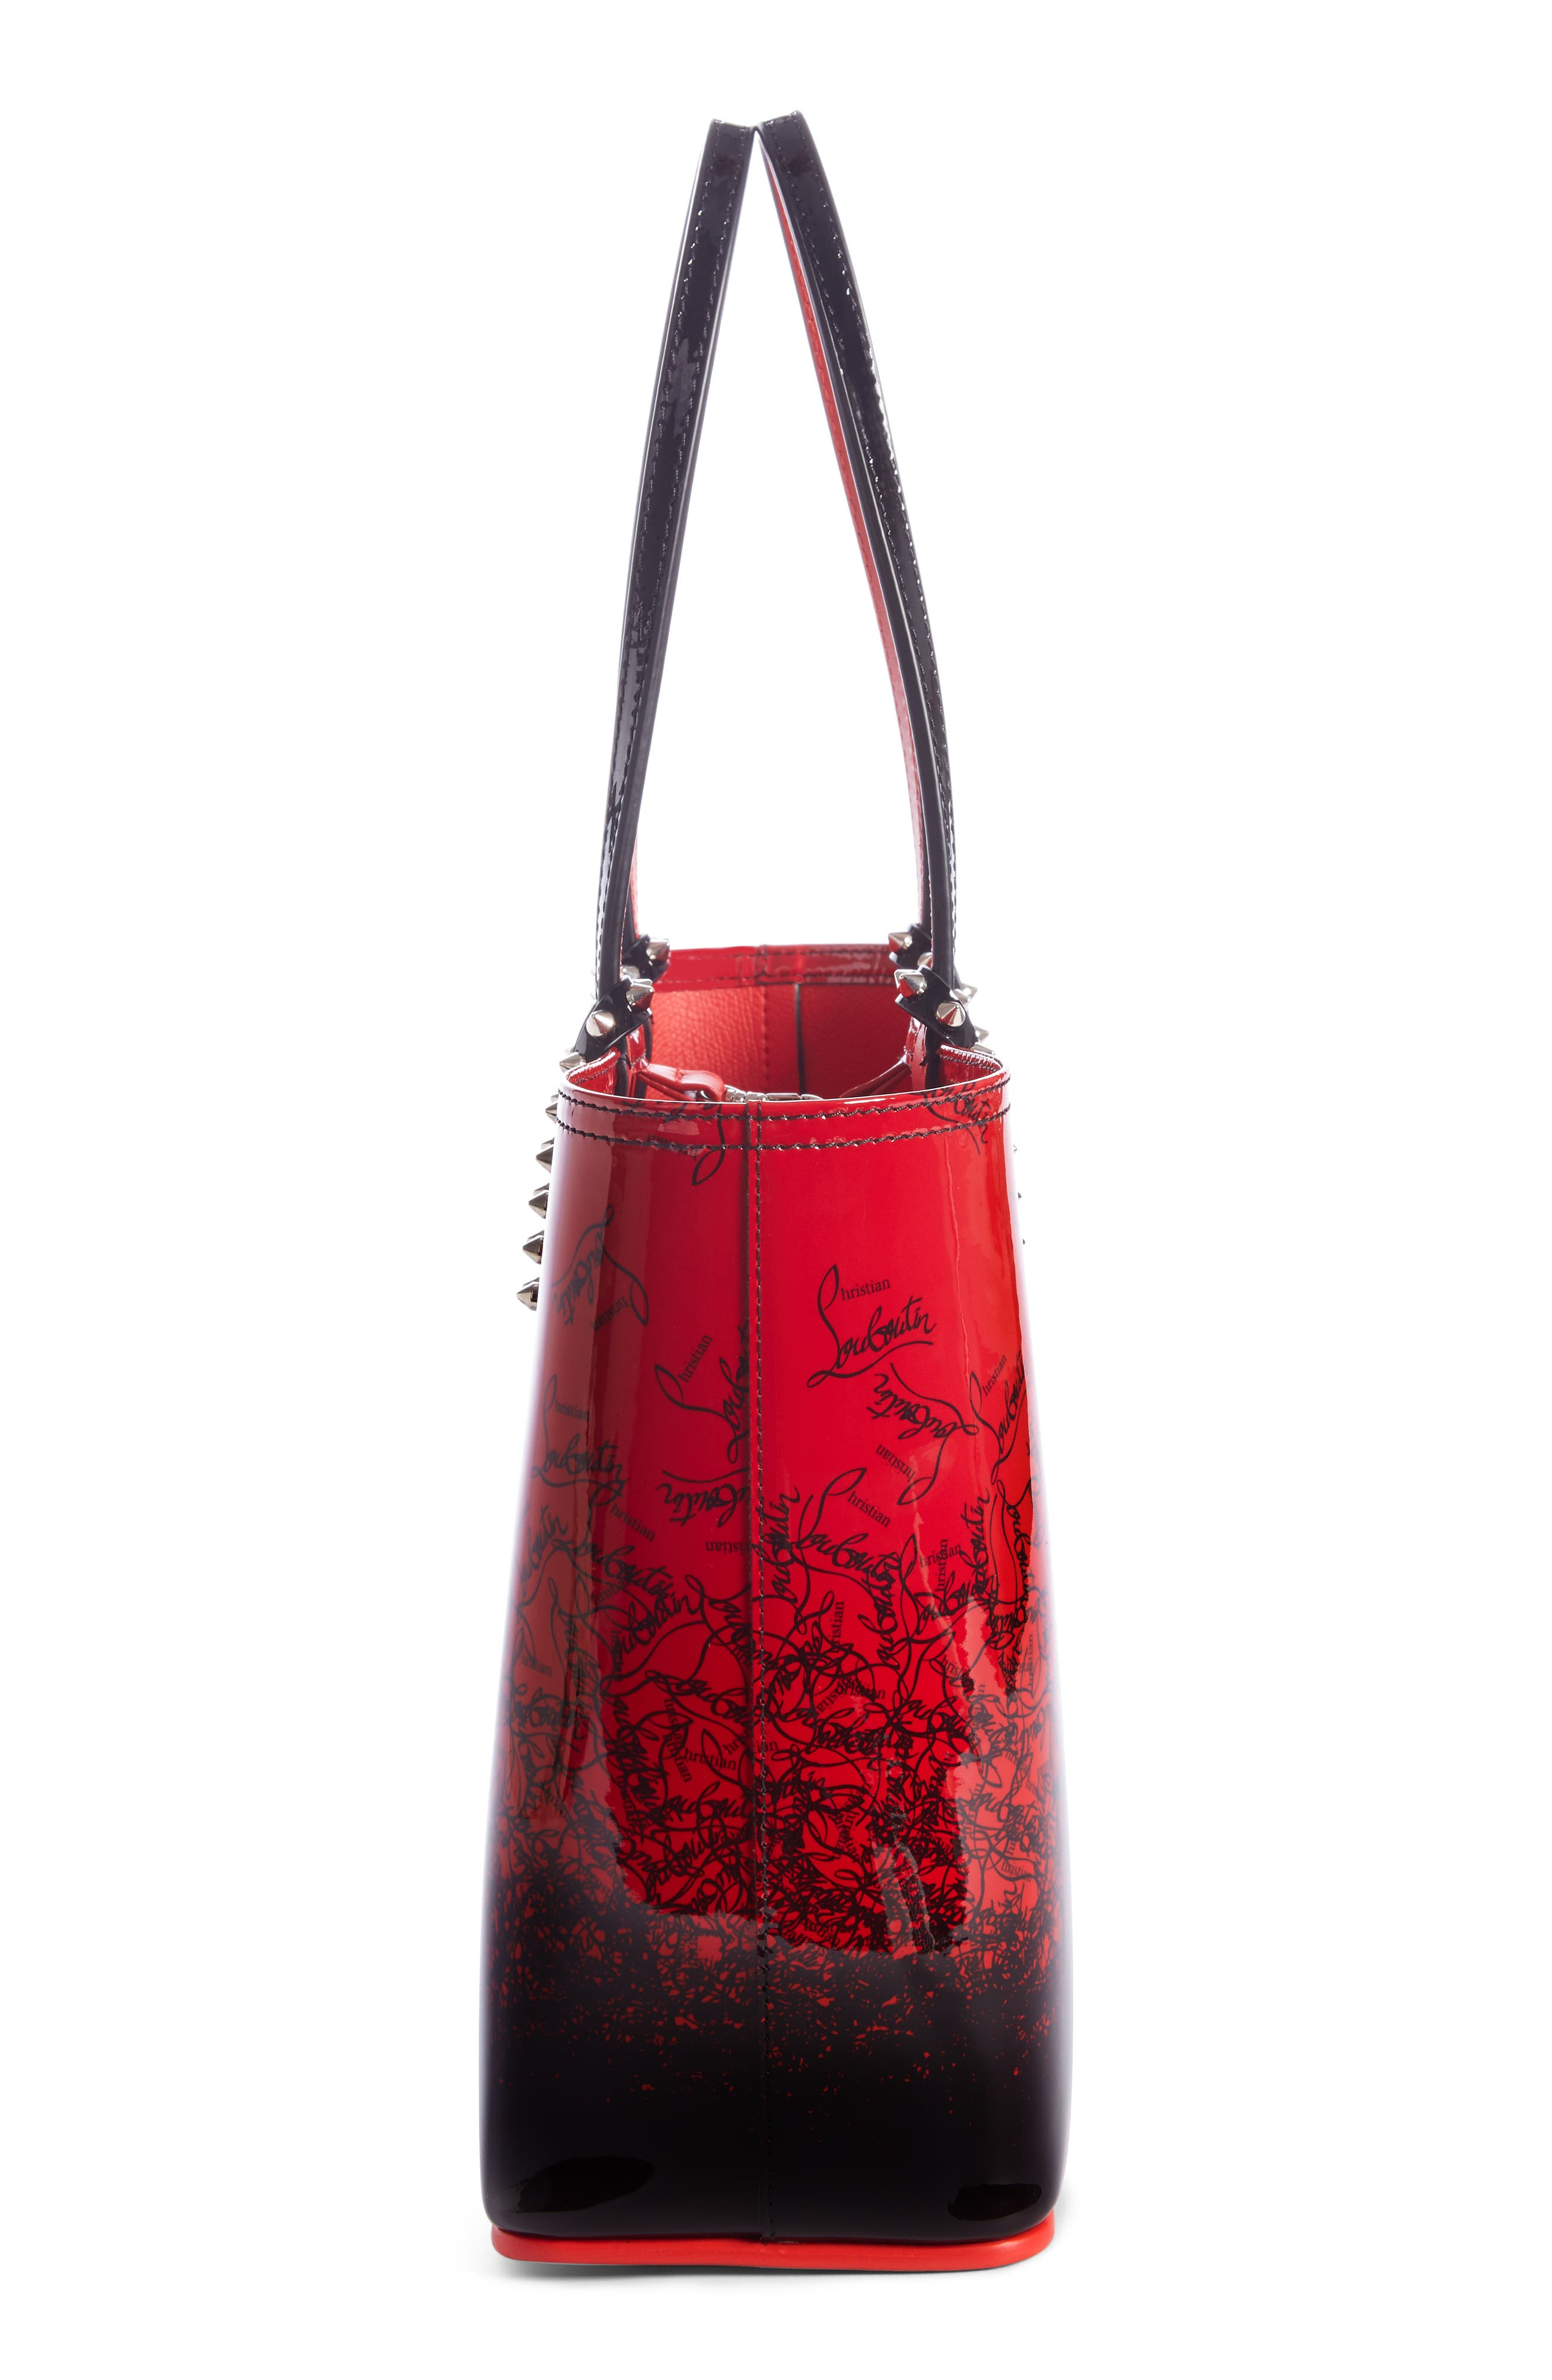 CHRISTIAN LOUBOUTIN,                             Cabata Dégradé Patent Leather Tote,                             Alternate thumbnail 3, color,                             600